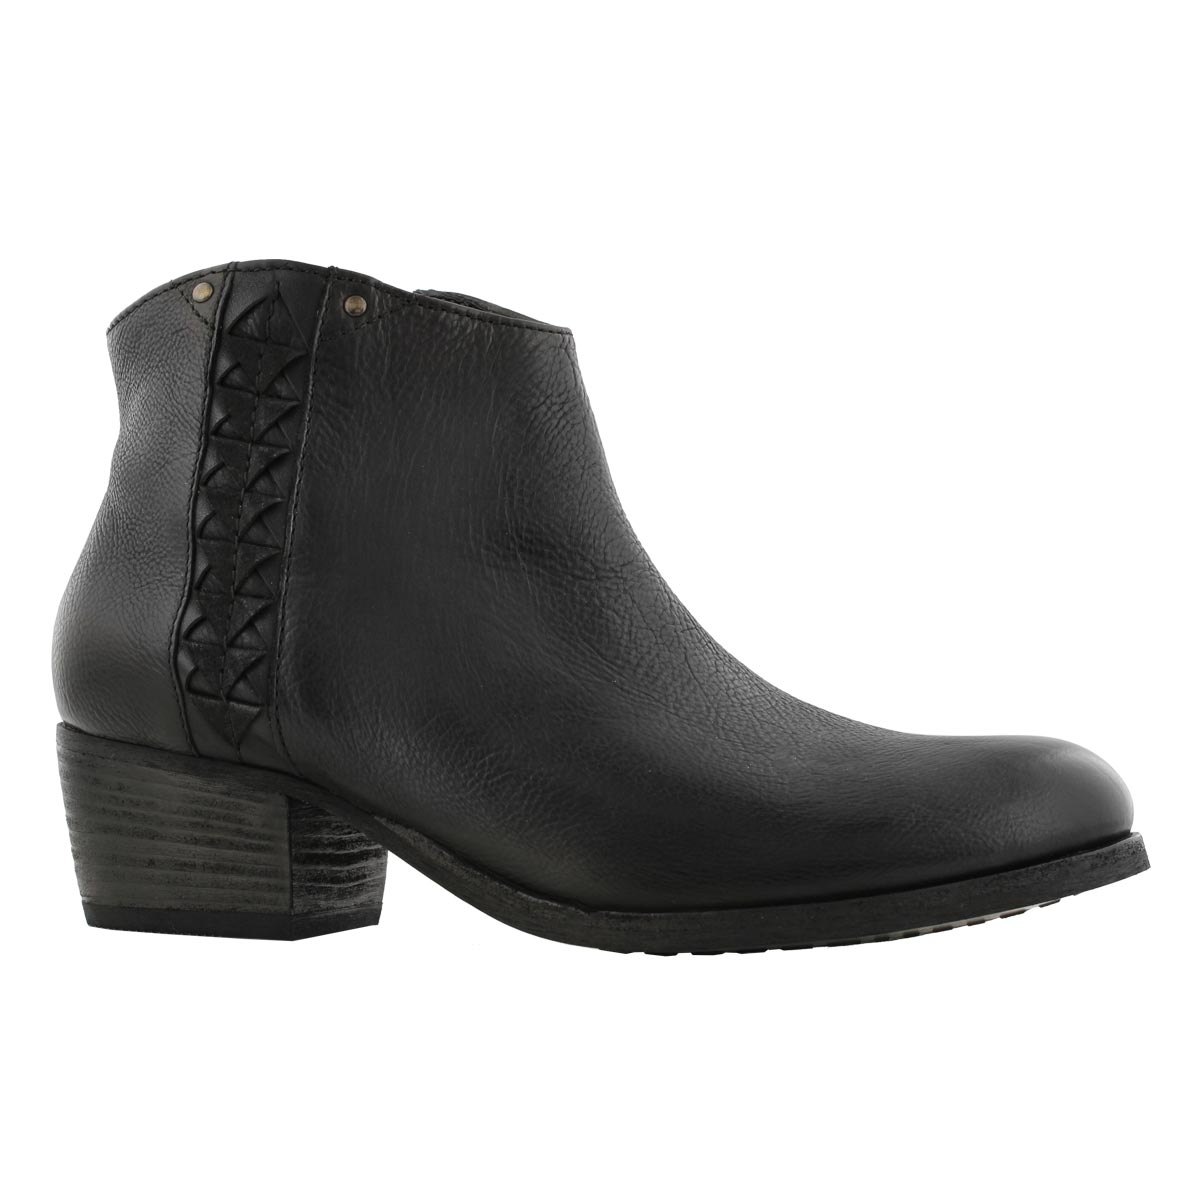 Lds Maypearl Fawn blk slip on ankle boot